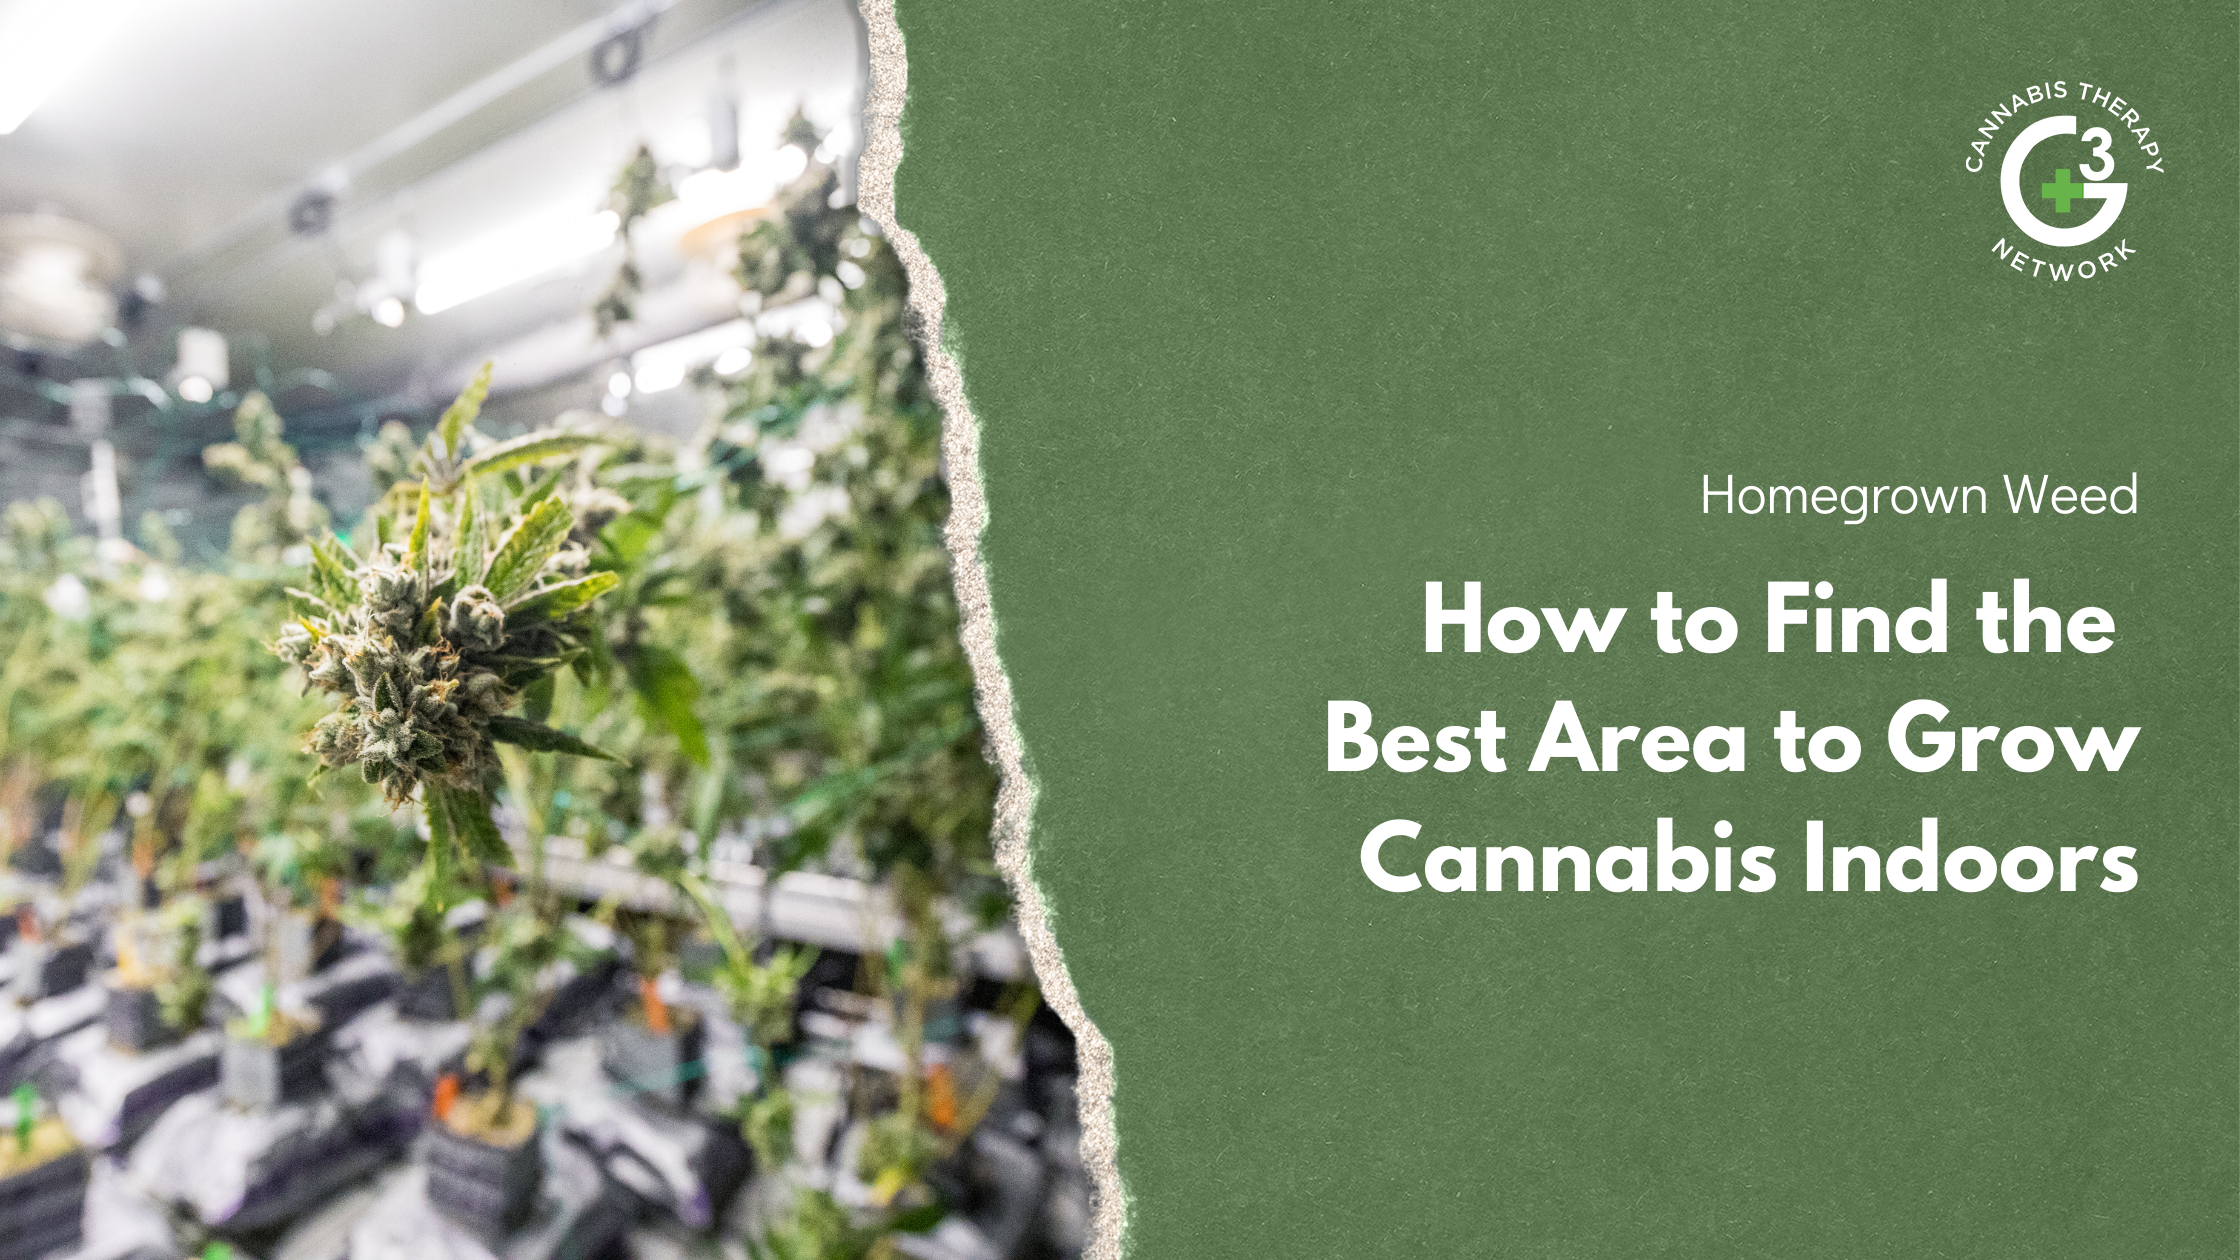 How to find the best place to grow cannabis indoors